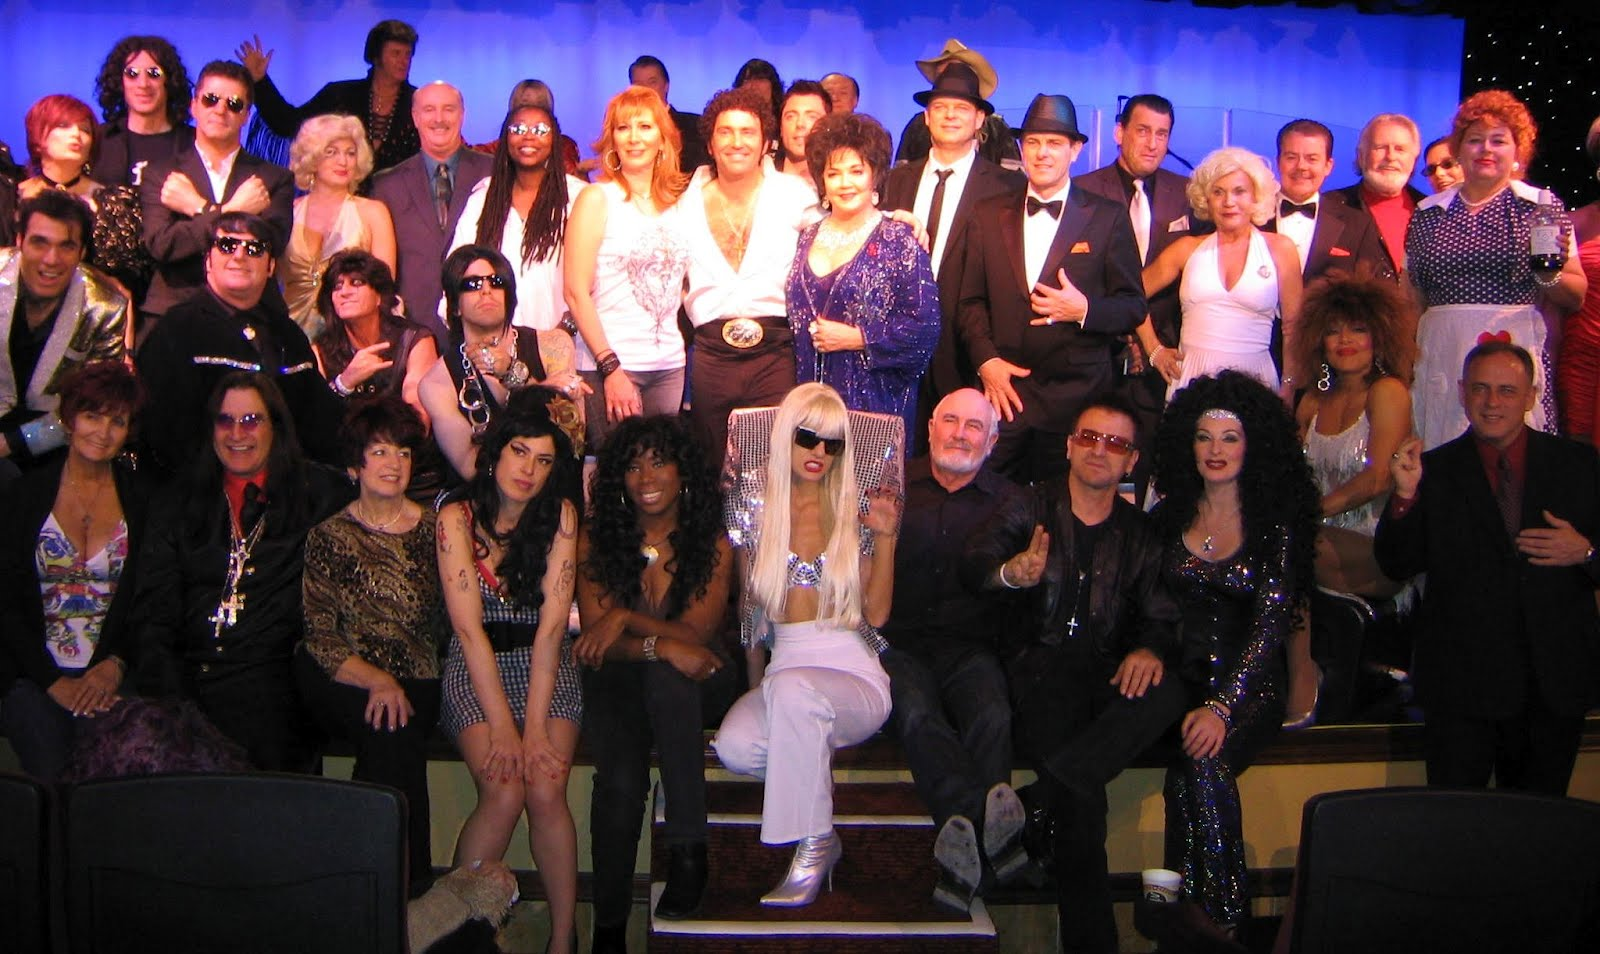 Tribute / Impersonator - Las Vegas Shows - Discount Tickets